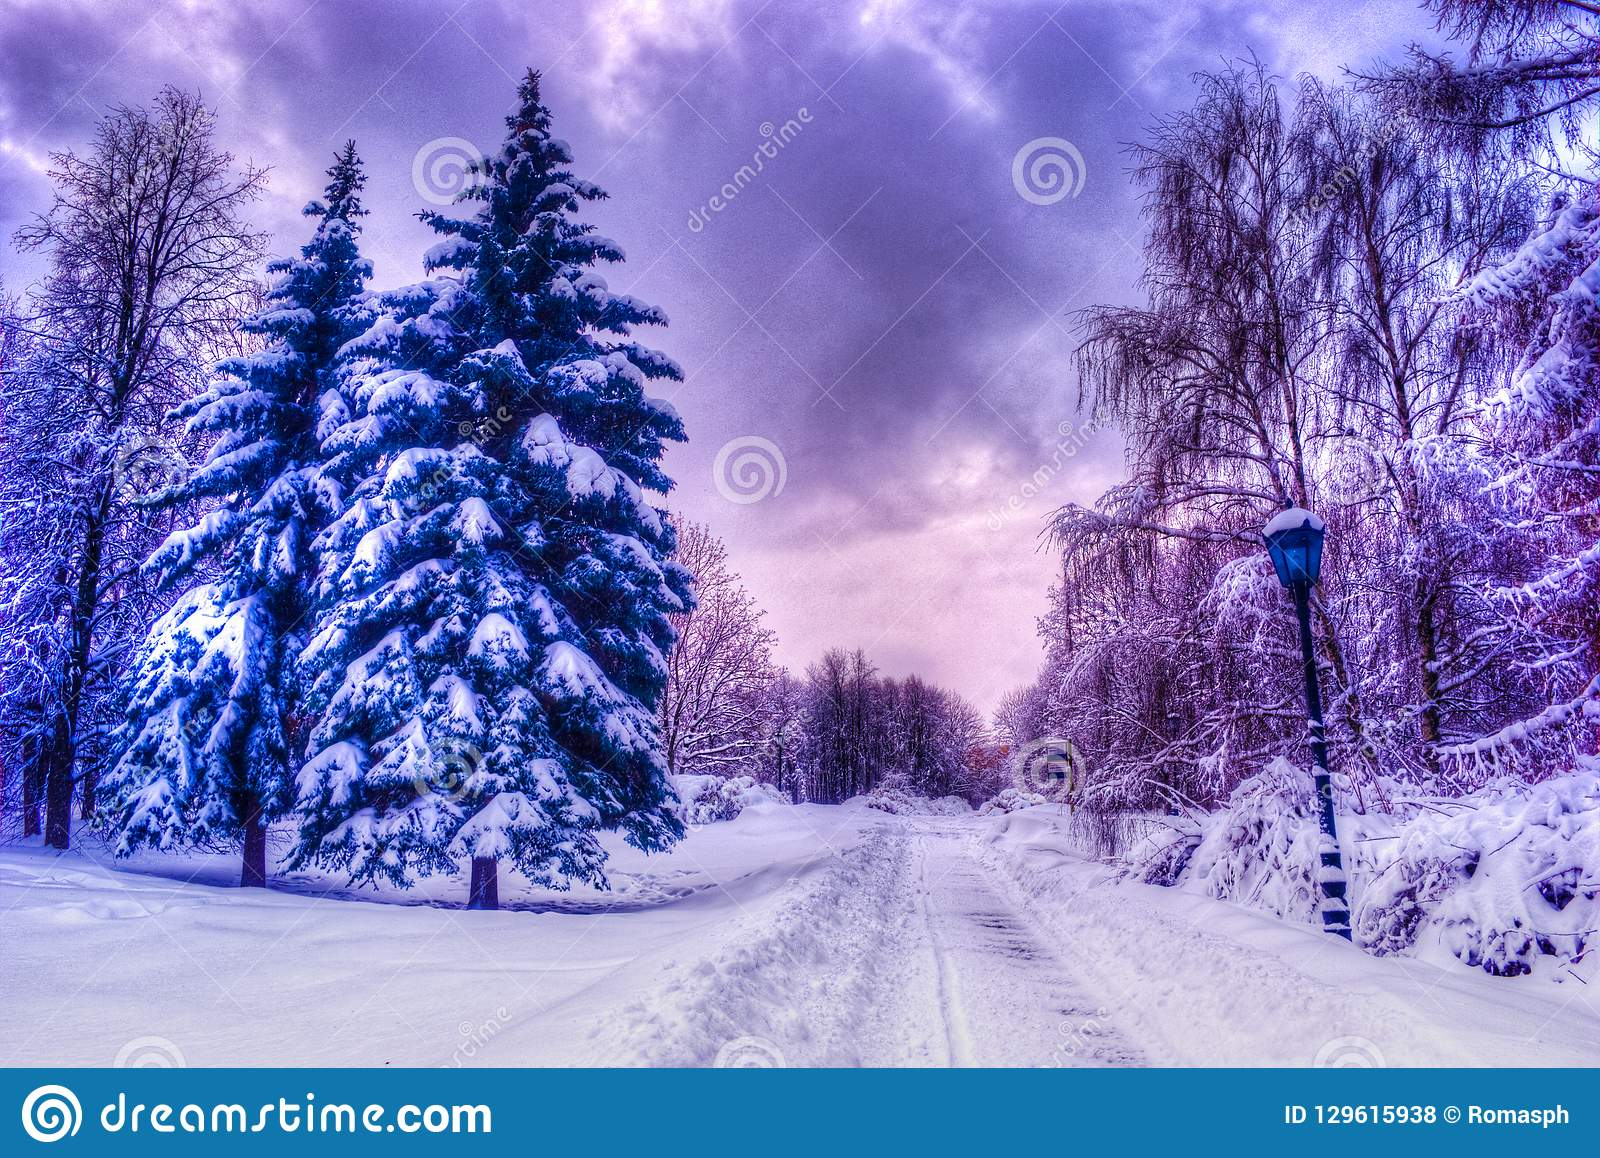 Christmas winter landscape, spruce and pine trees covered in snow